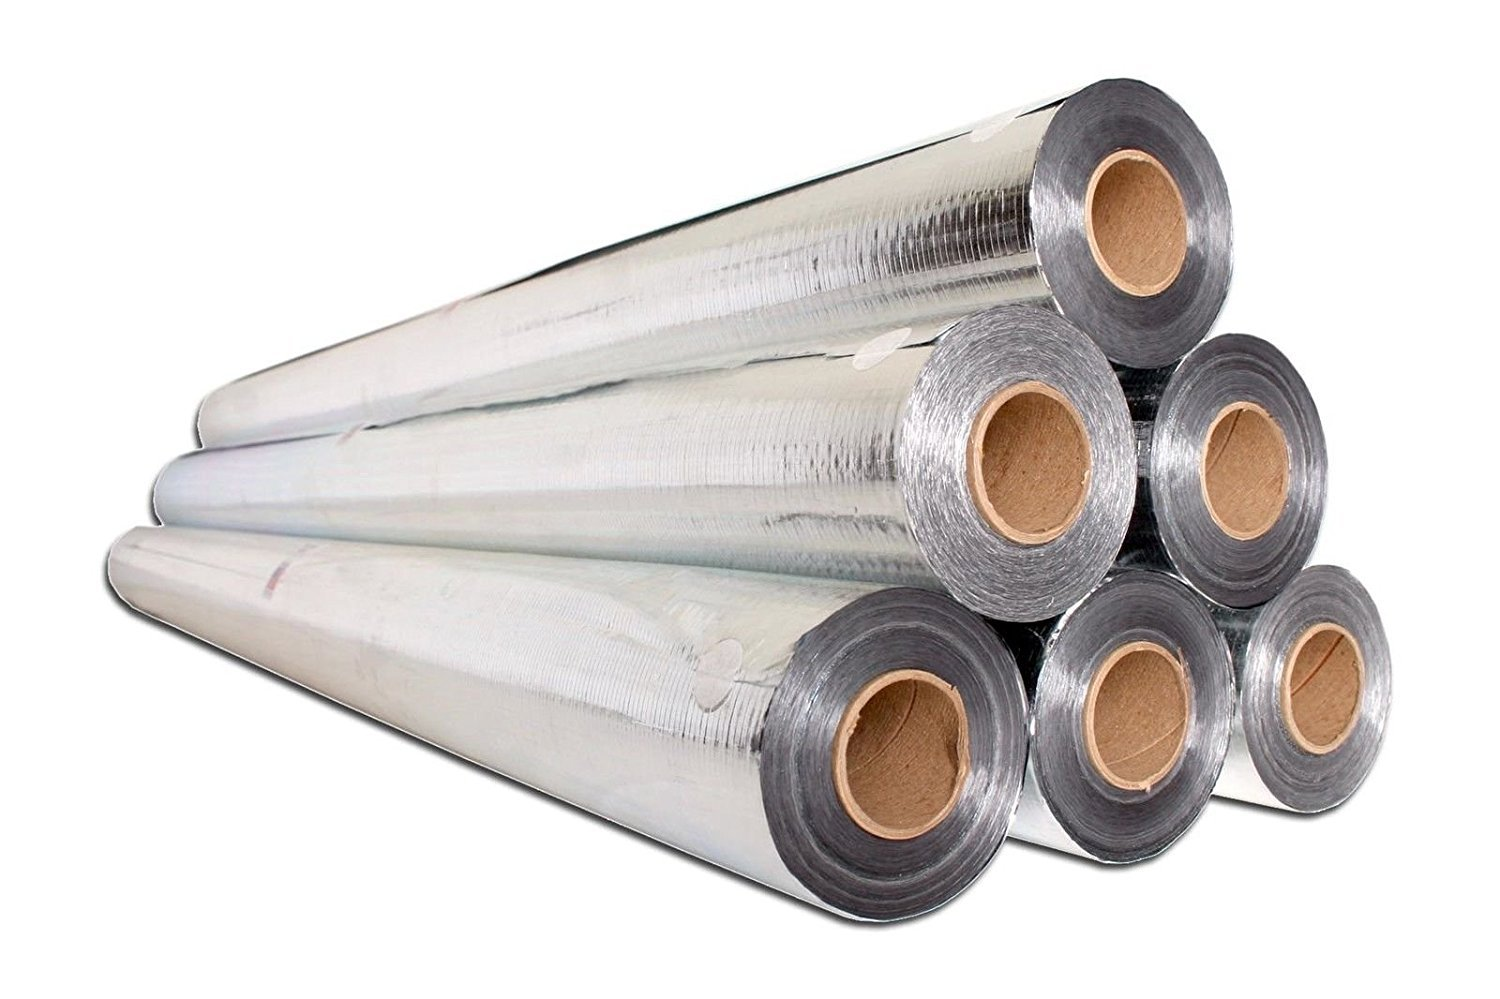 3. AES ARMA FOIL™ 1000sqft (4ft Wide) Commercial Grade